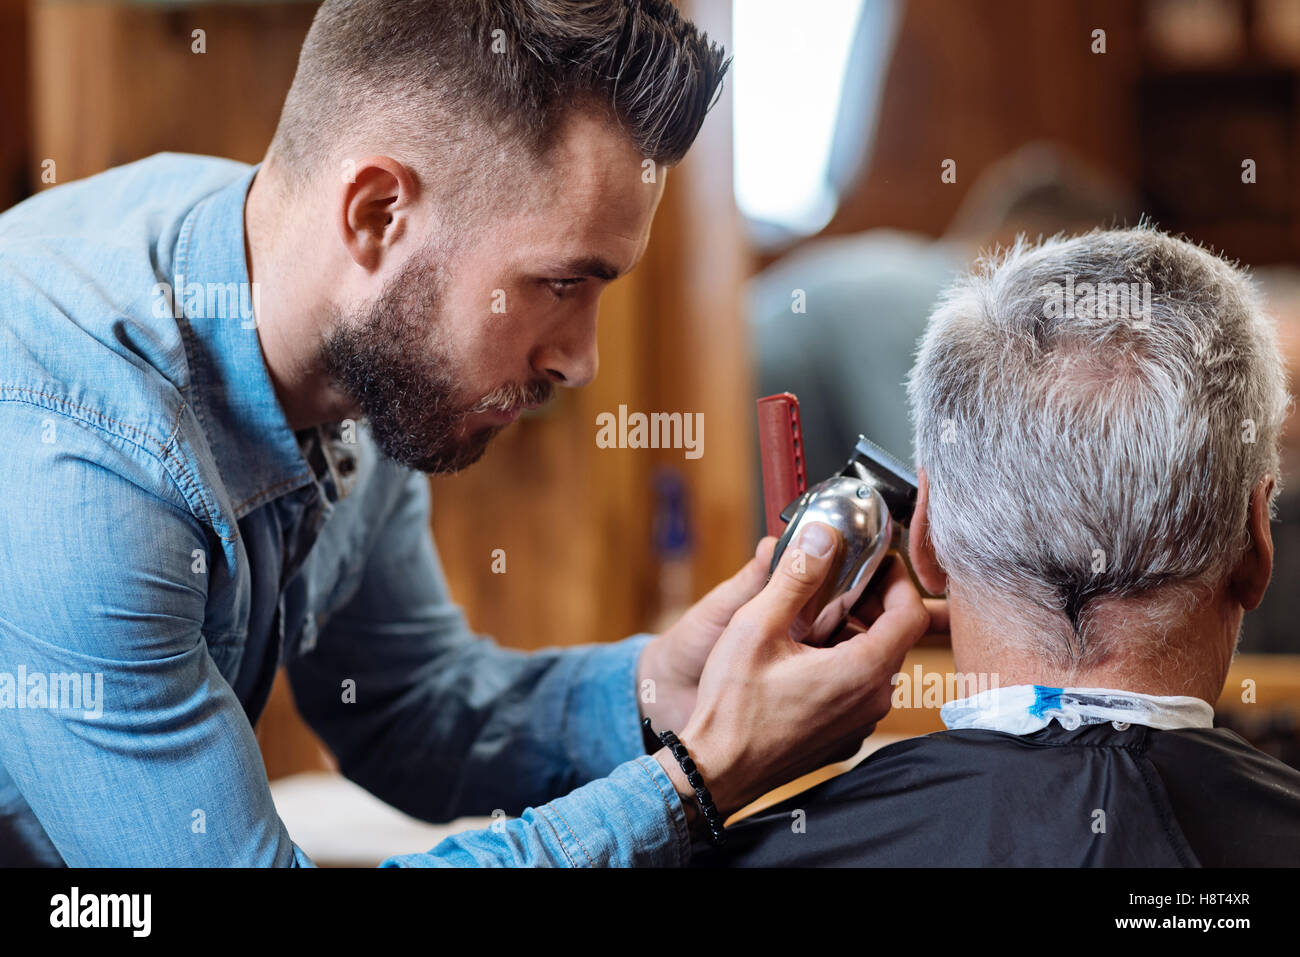 Close up of hairstylist trimming senior client hair - Stock Image